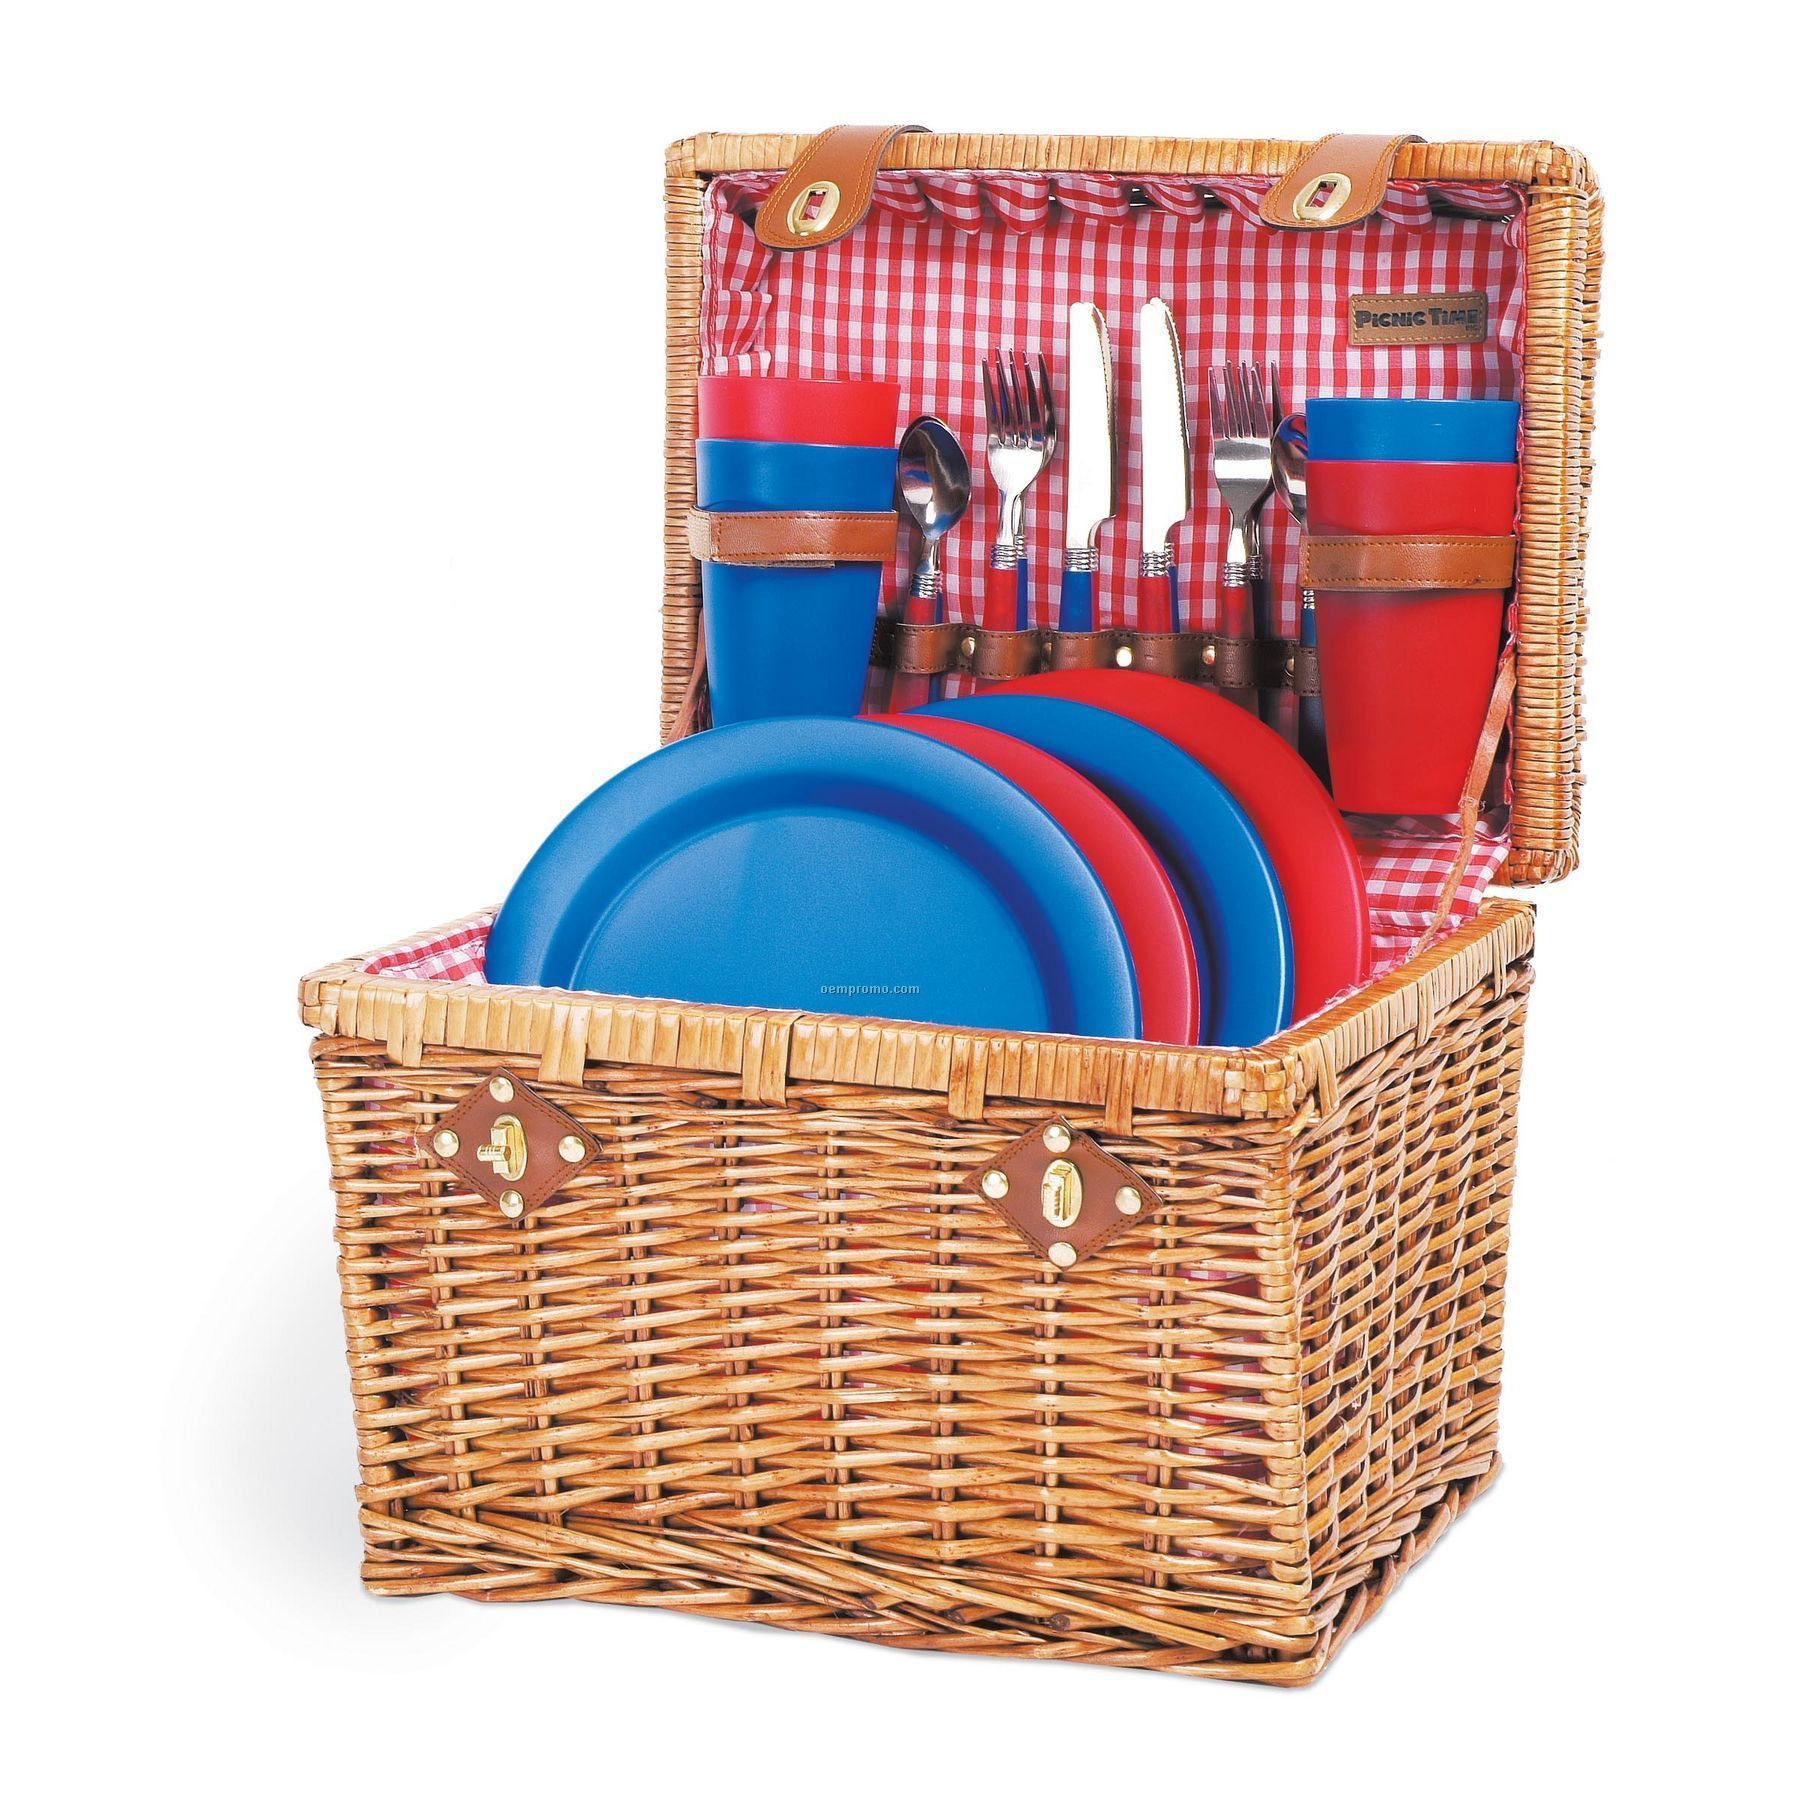 Cheap Picnic Basket For 4 : Oxford willow picnic basket w service for blue red